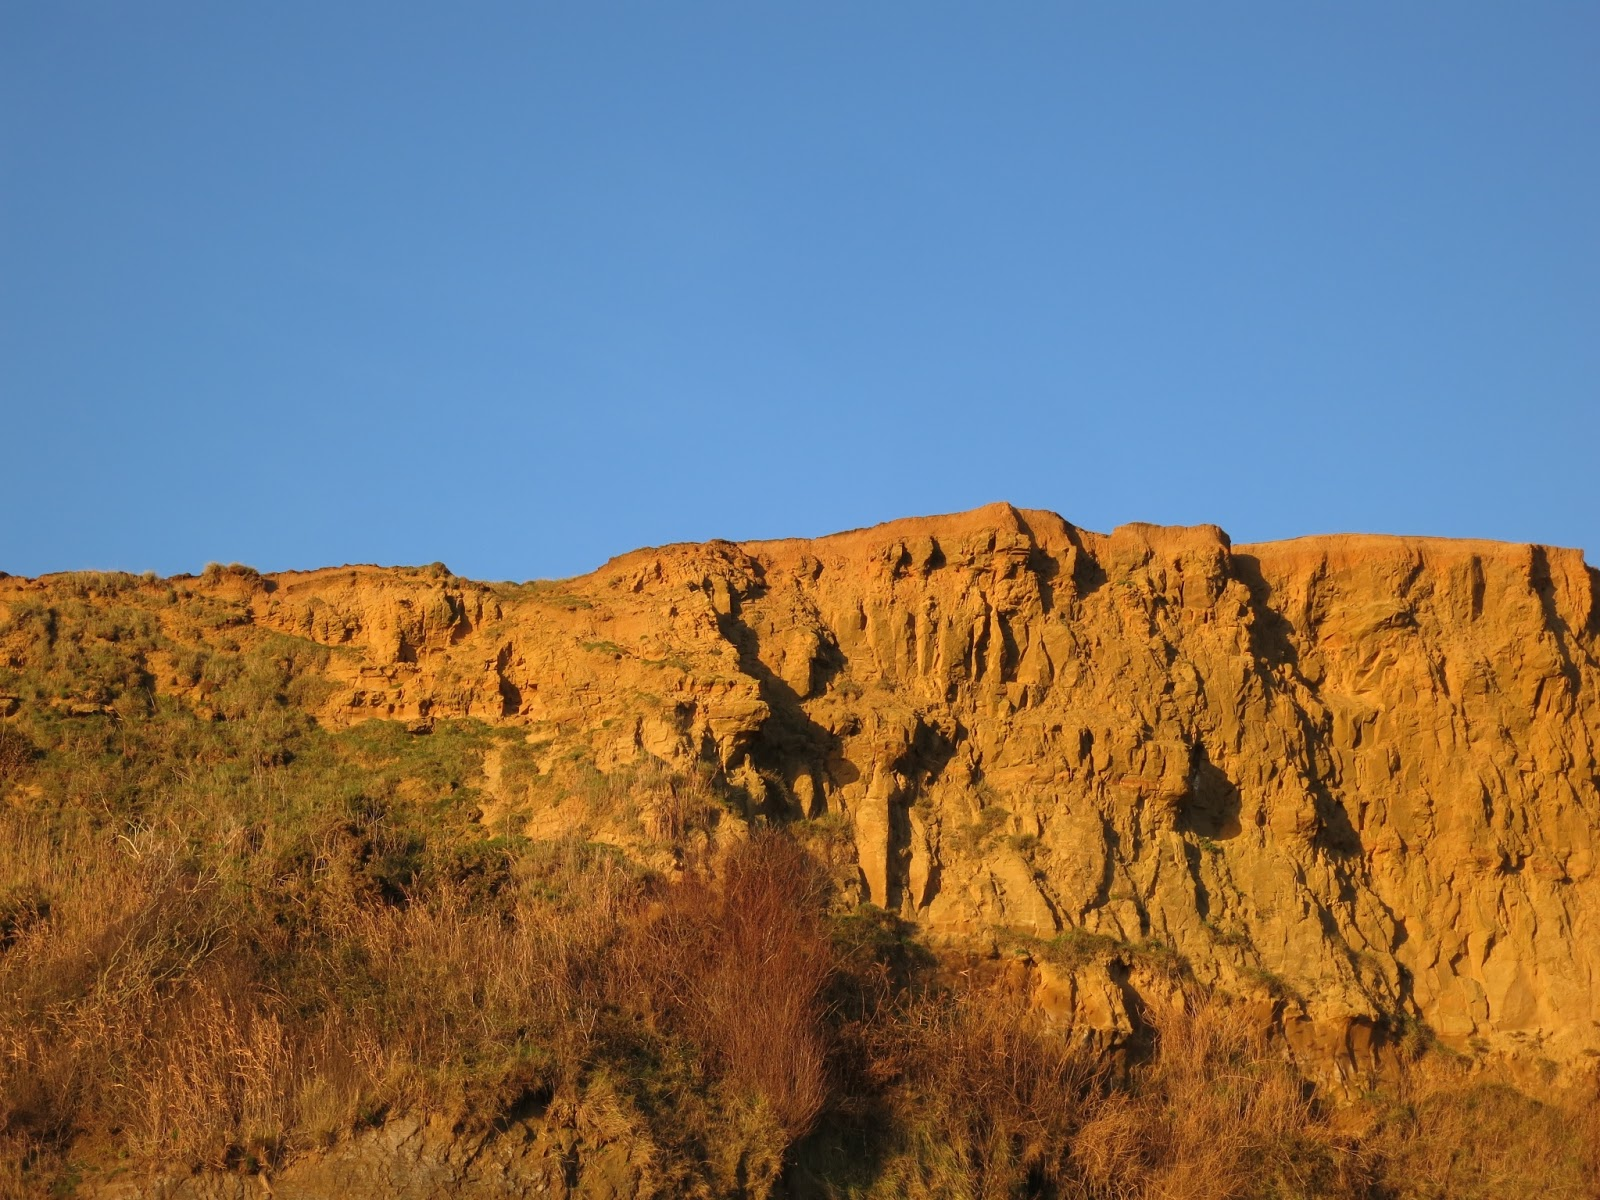 Golden cliffs at Eype on a blue sky November day.